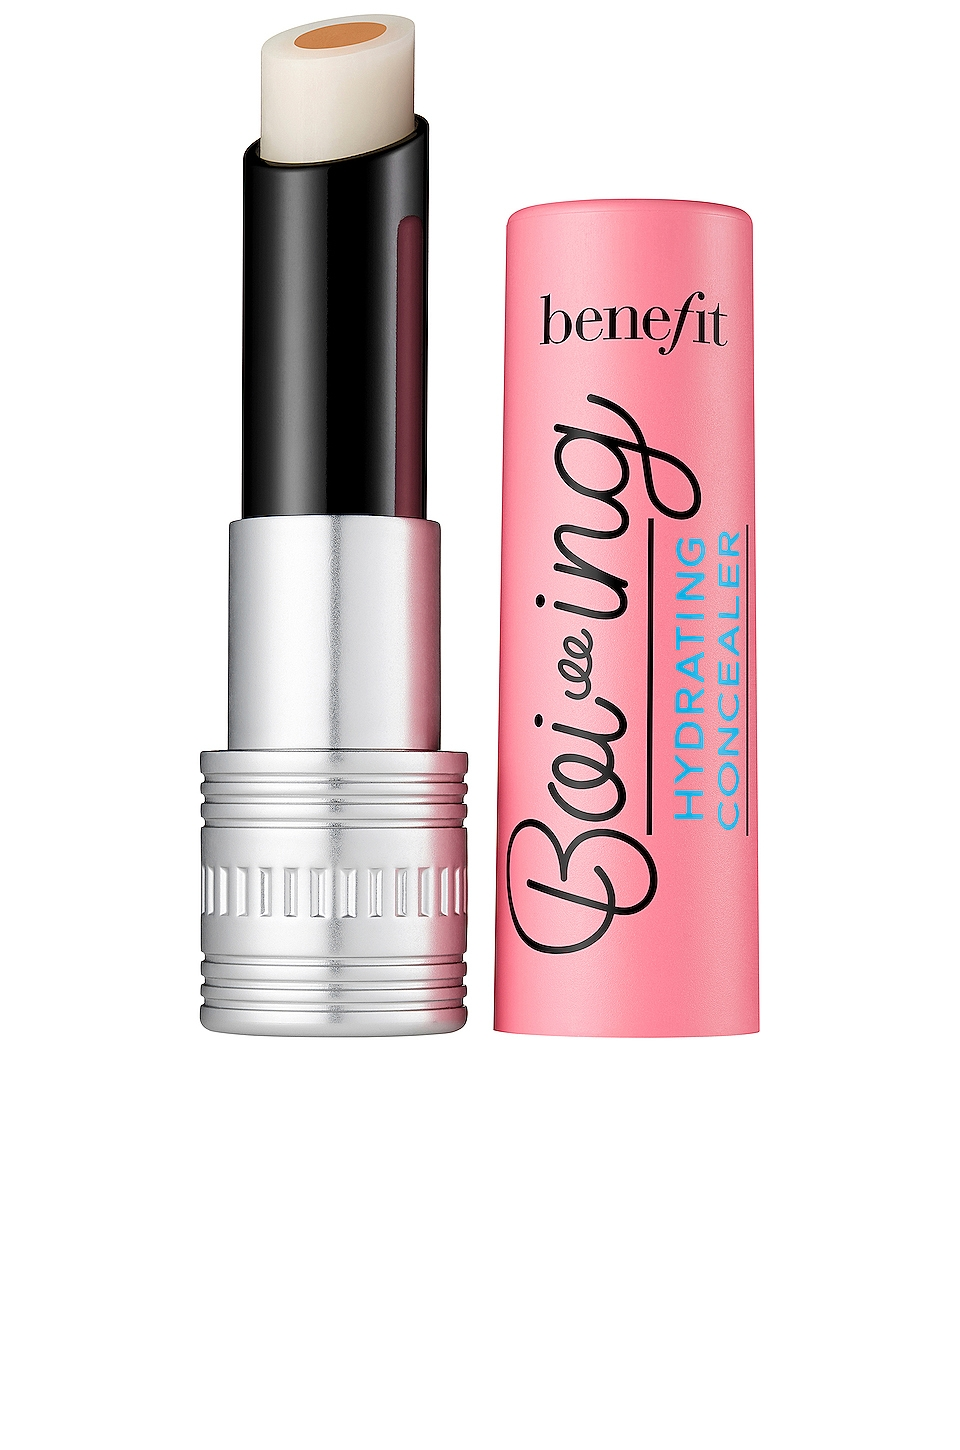 Benefit Cosmetics Boi-ing Hydrating Concealer in Shade 03